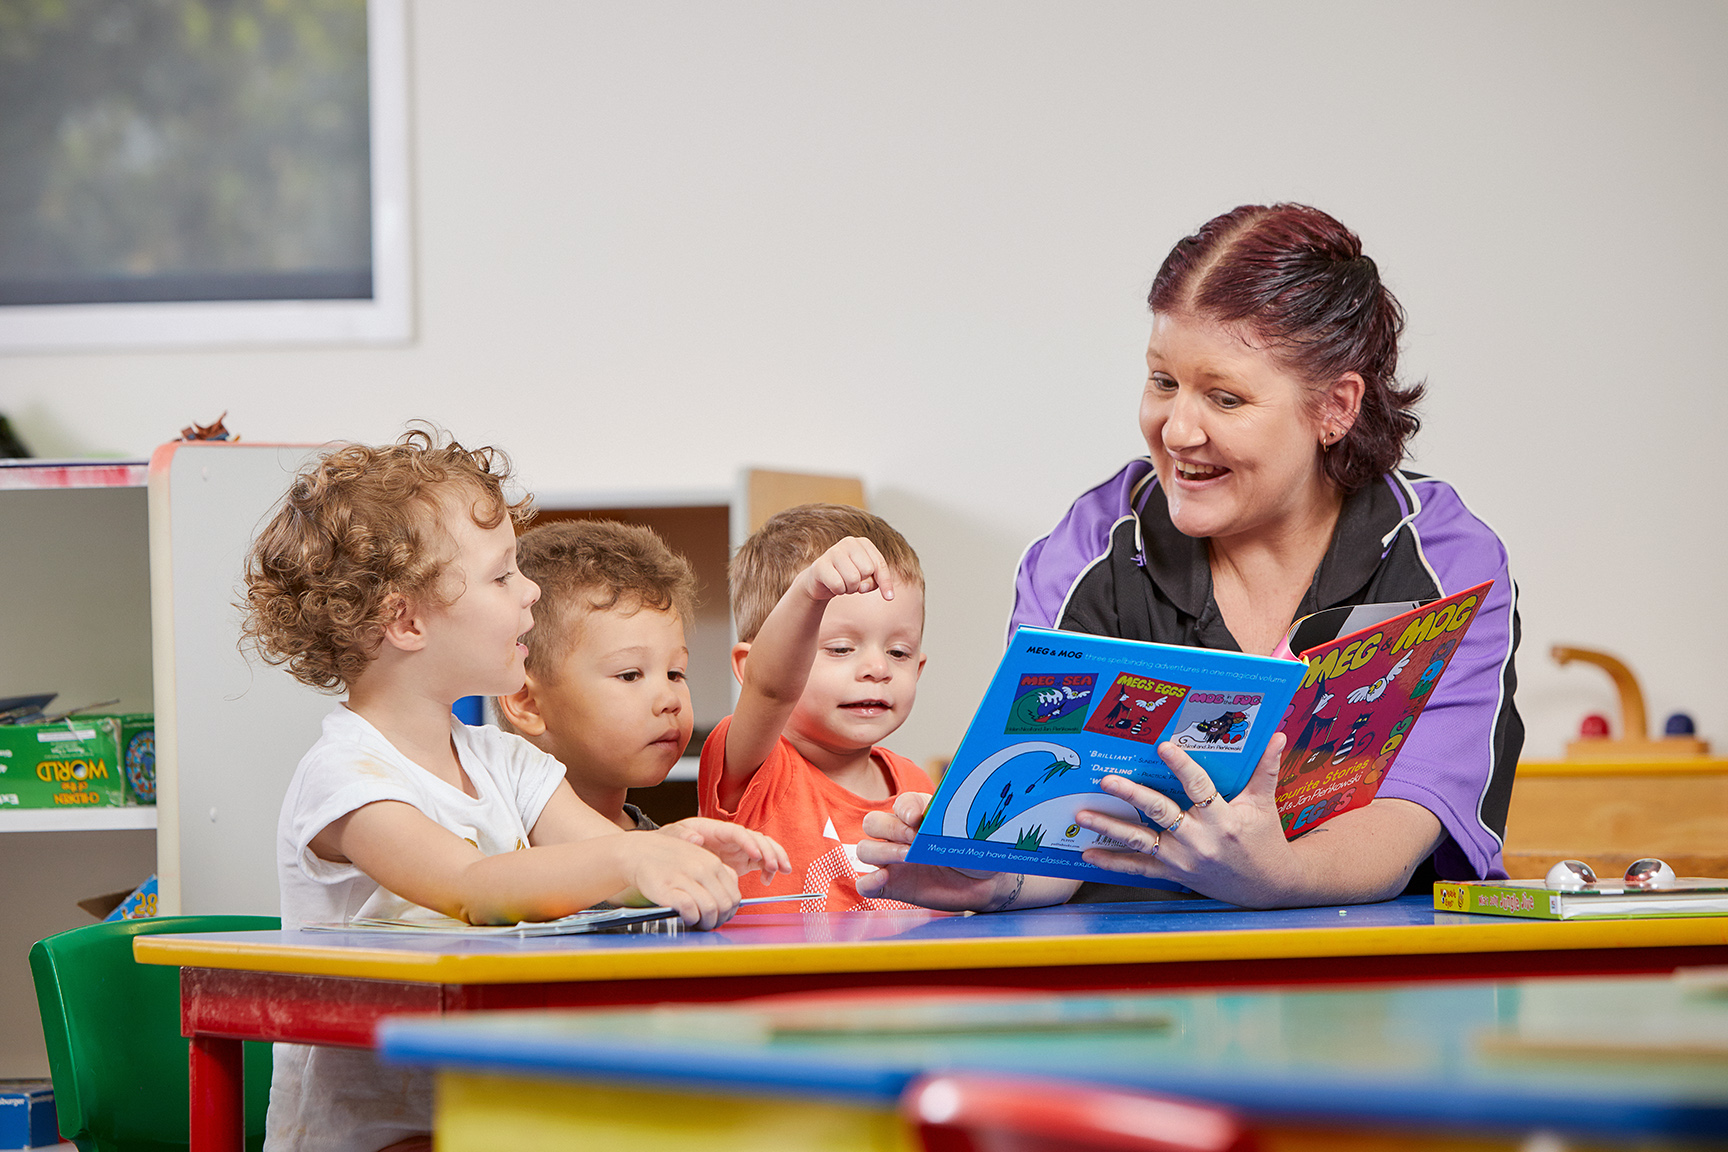 A Child care educator reading a book to 3 toddlers in a classroom